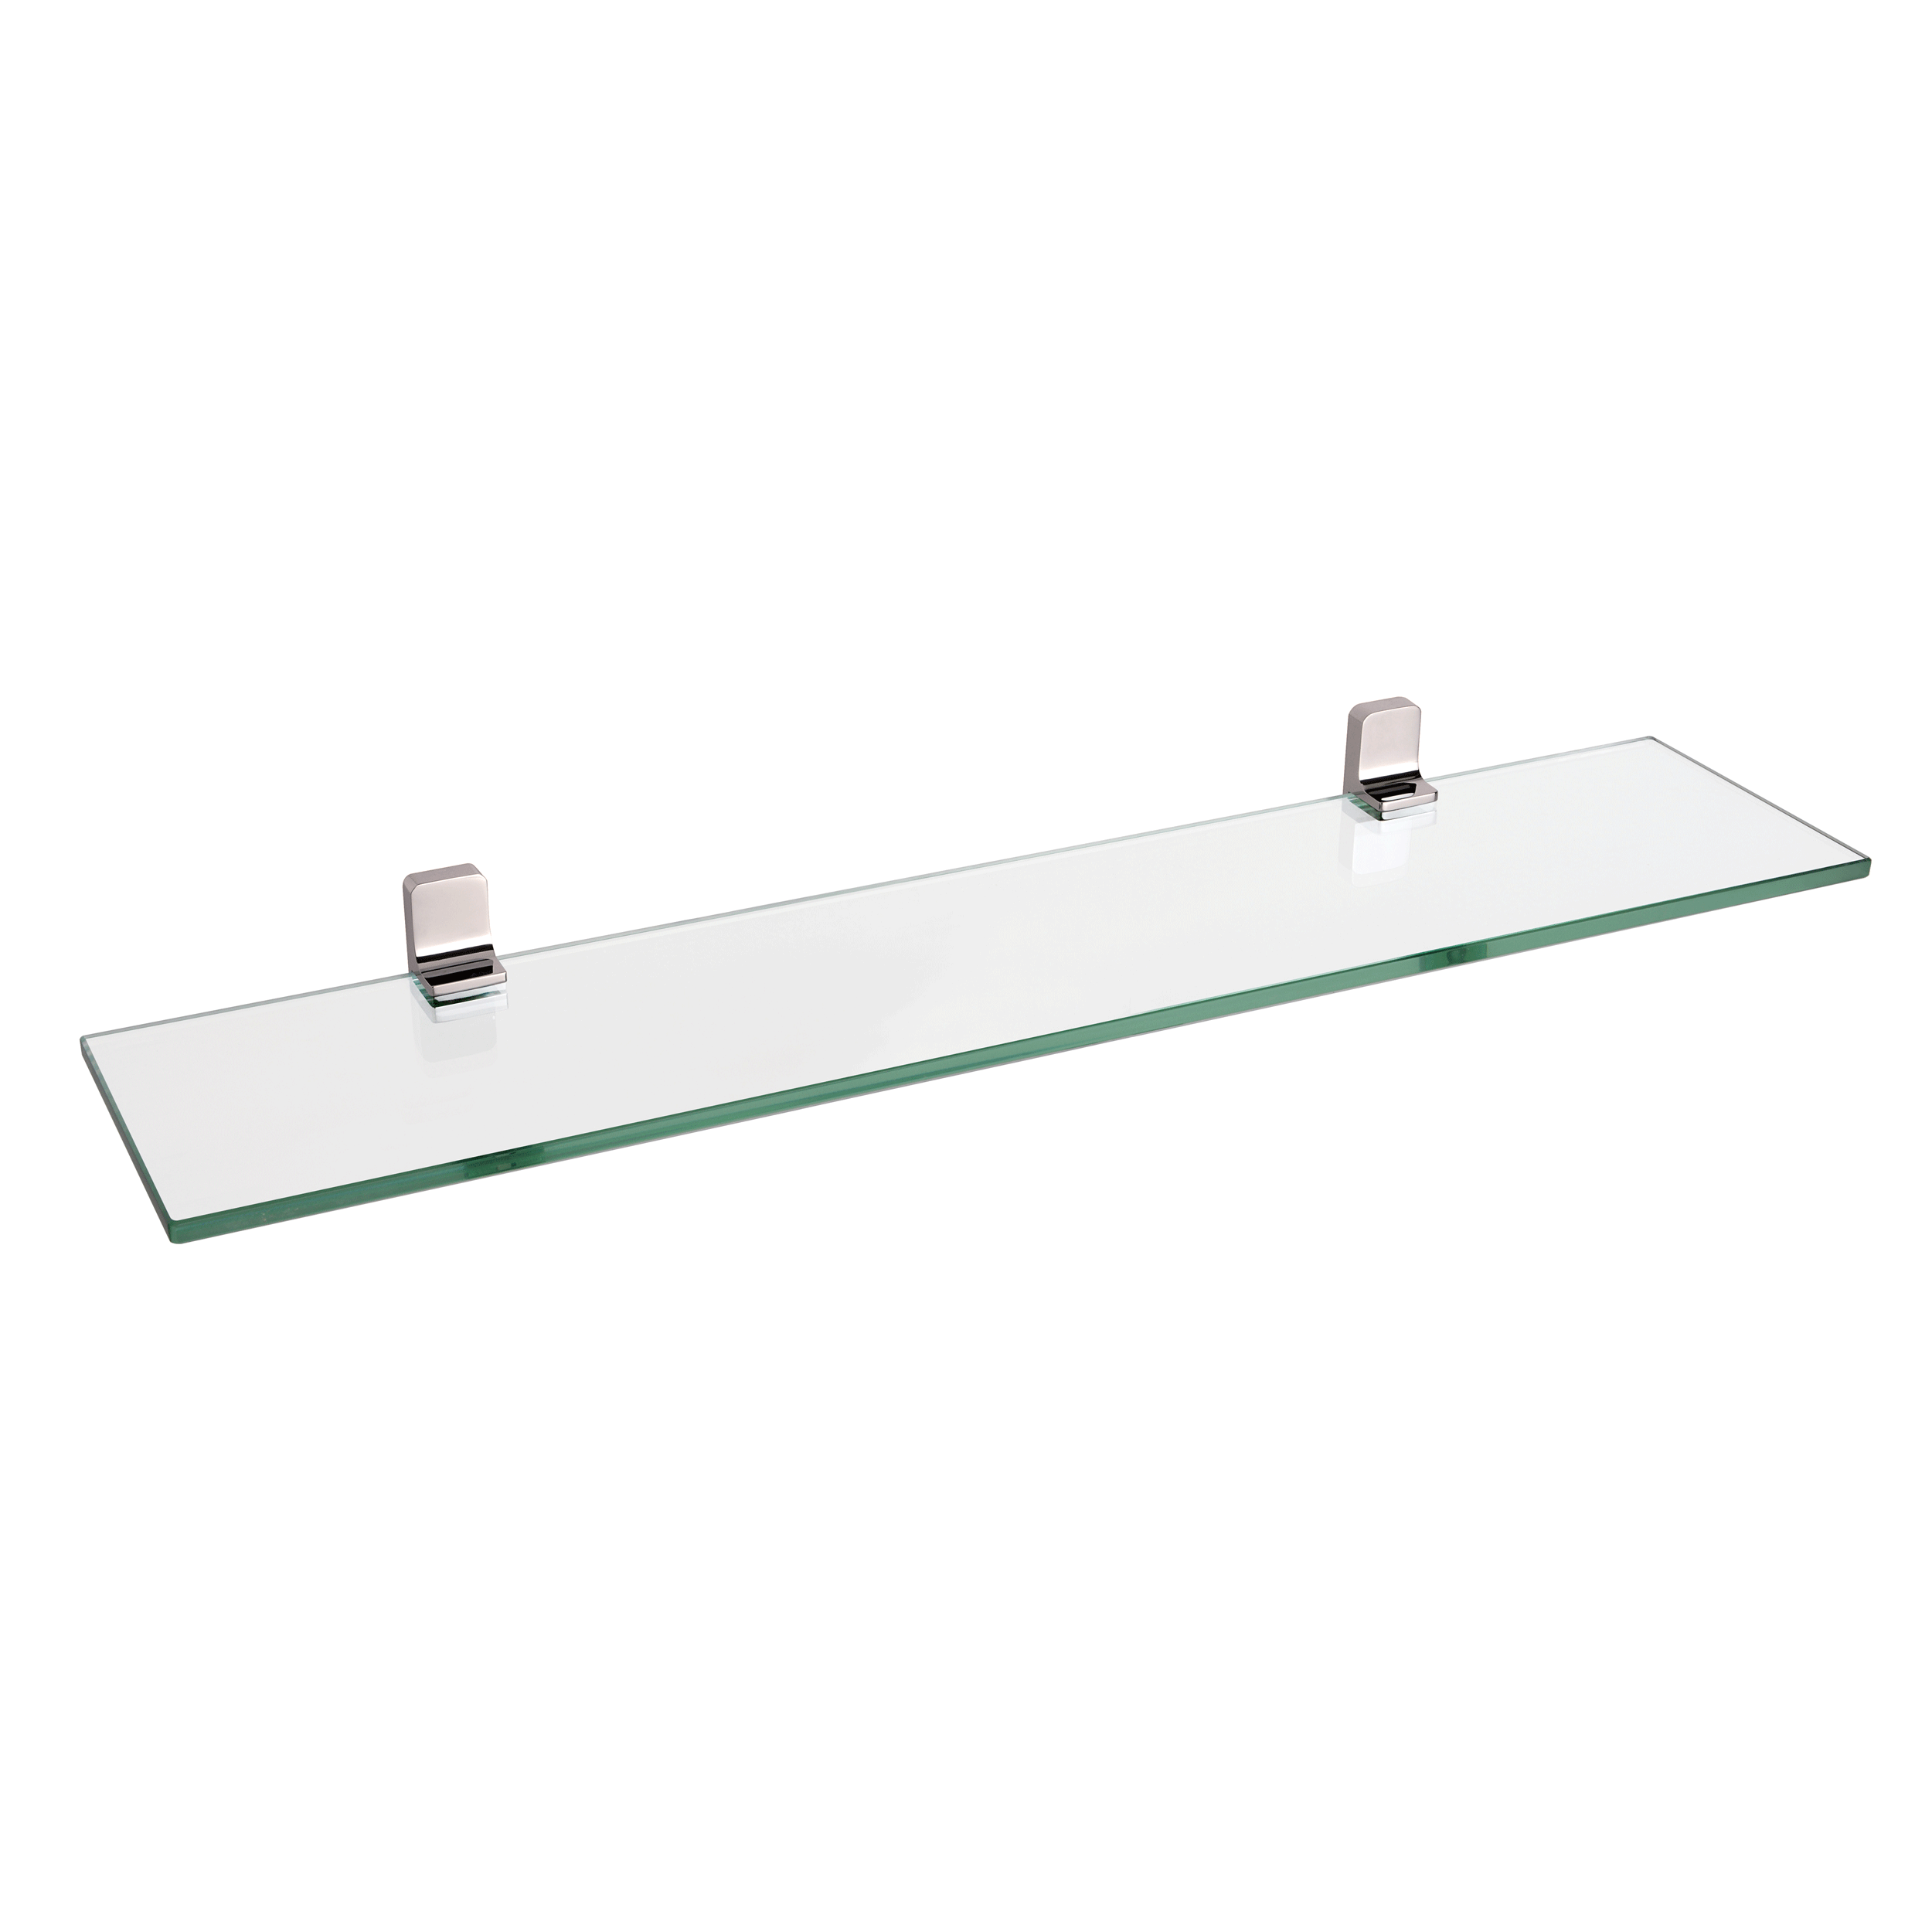 Peachy Bai 1524 Glass Shelf In Brushed Nickel Finish Download Free Architecture Designs Scobabritishbridgeorg